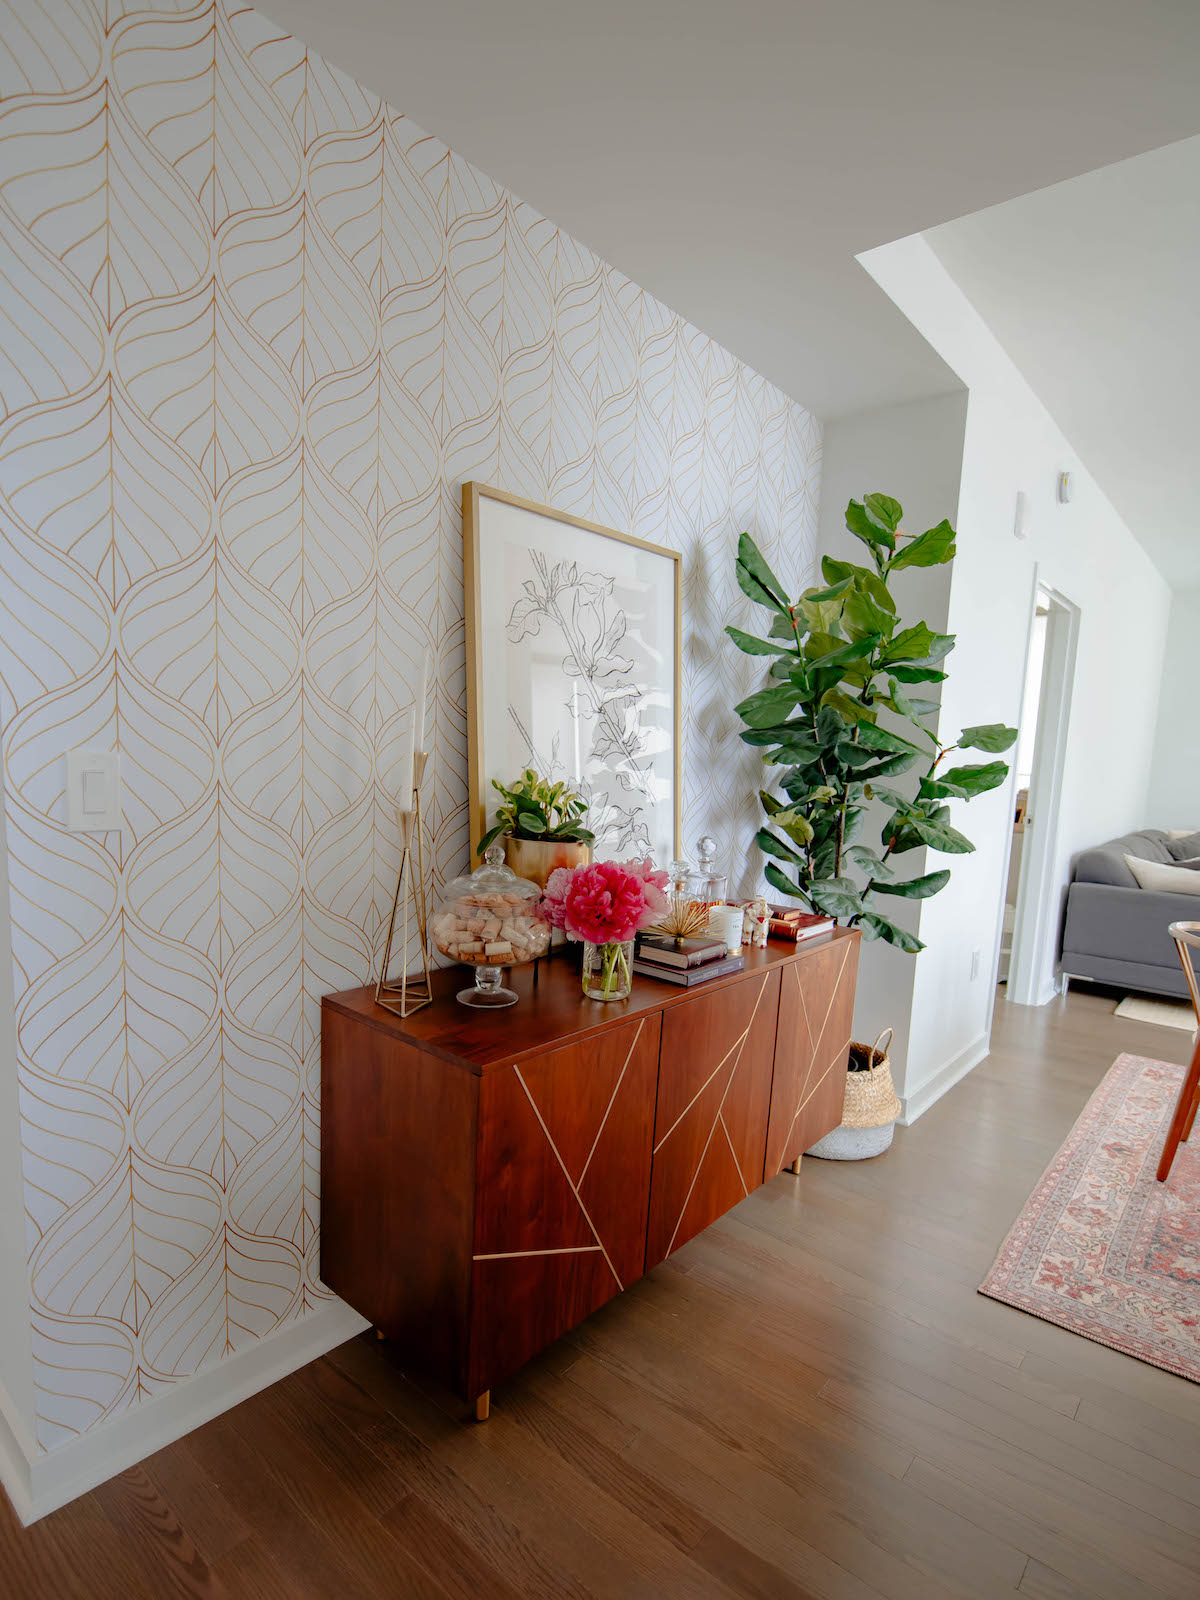 How To Apply Temporary Wallpaper In A Rental Apartment